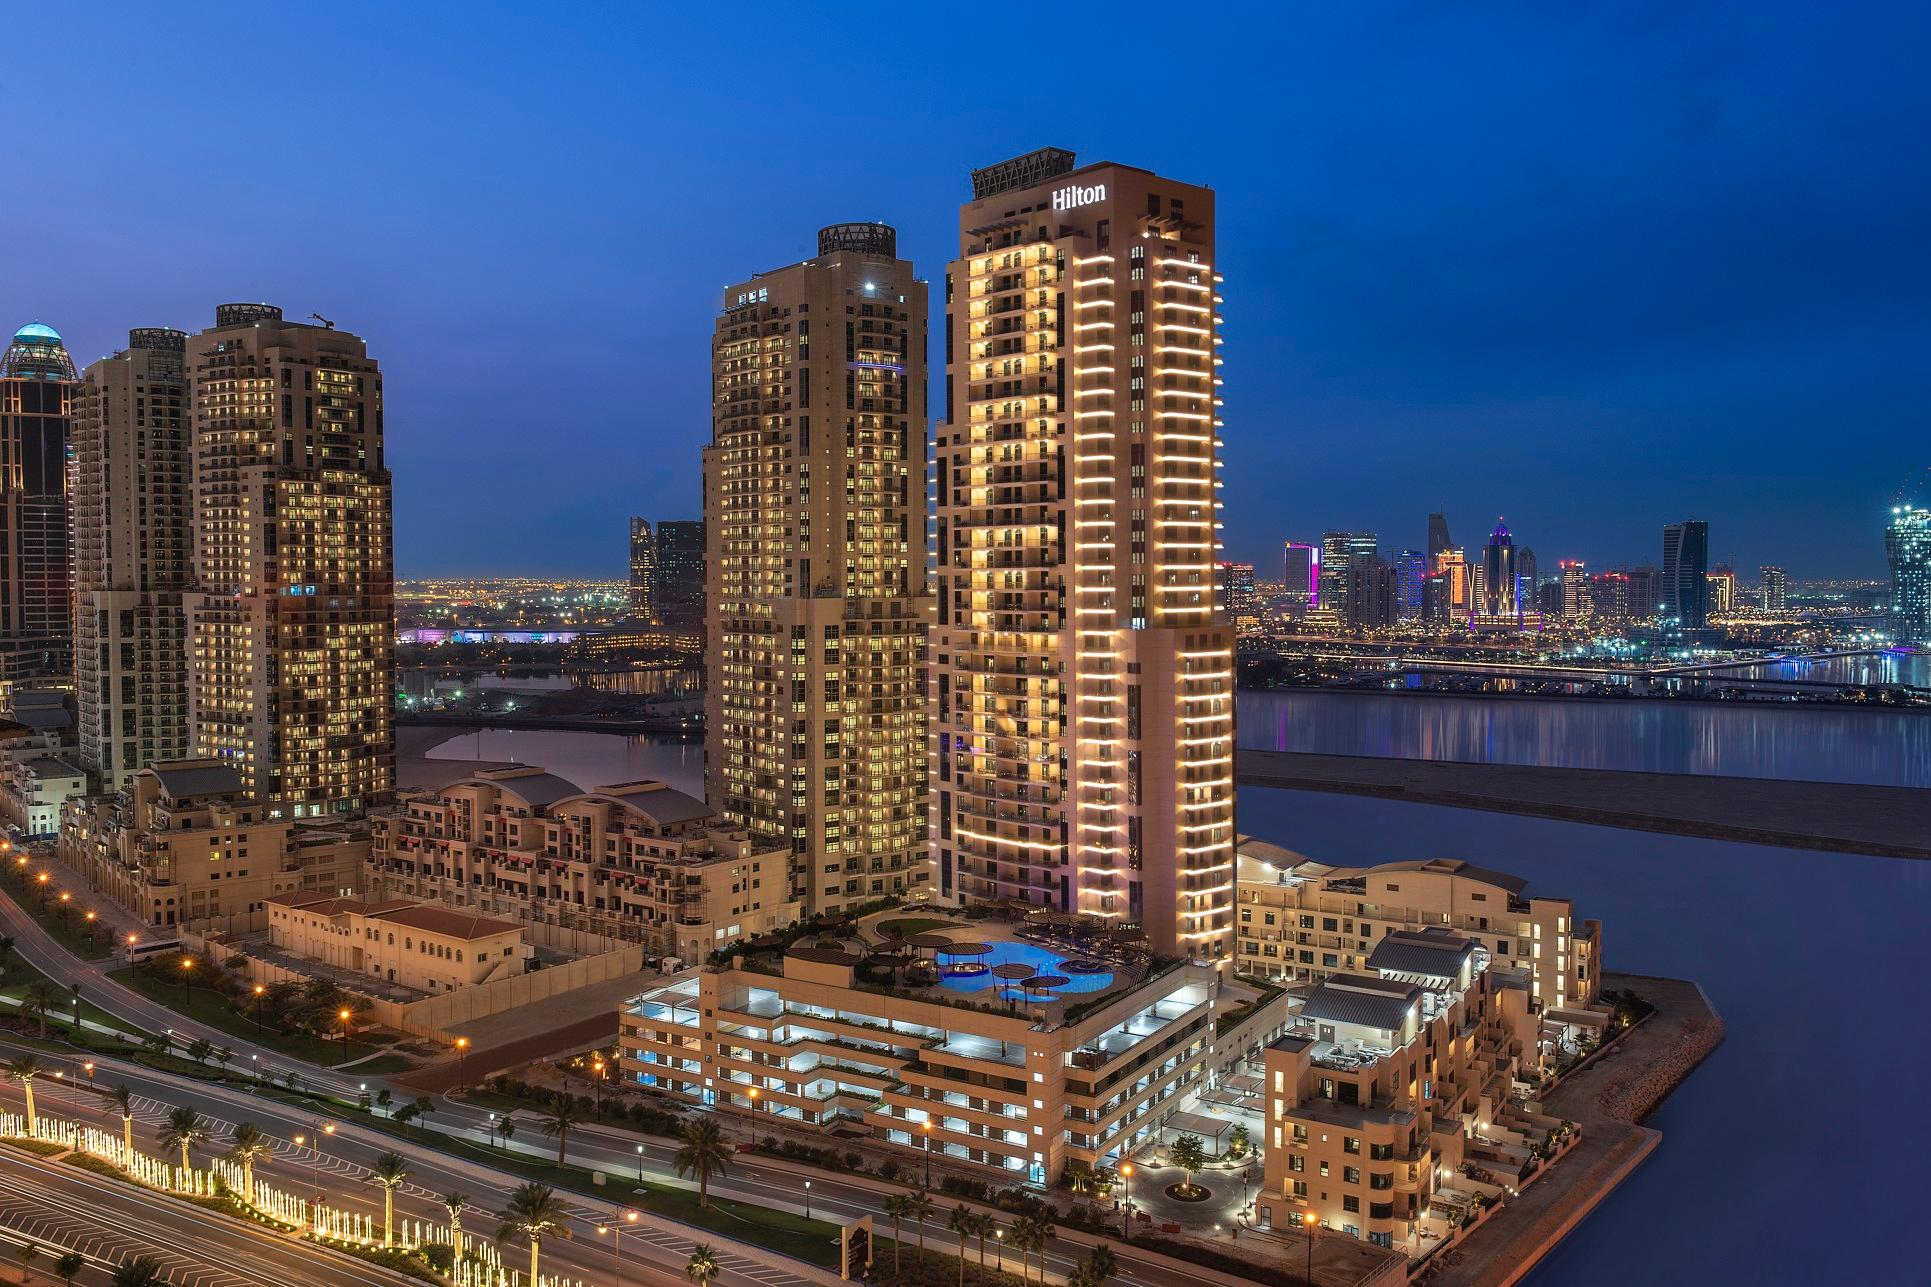 Hilton The Pearl launches Eid al-Fitr offers